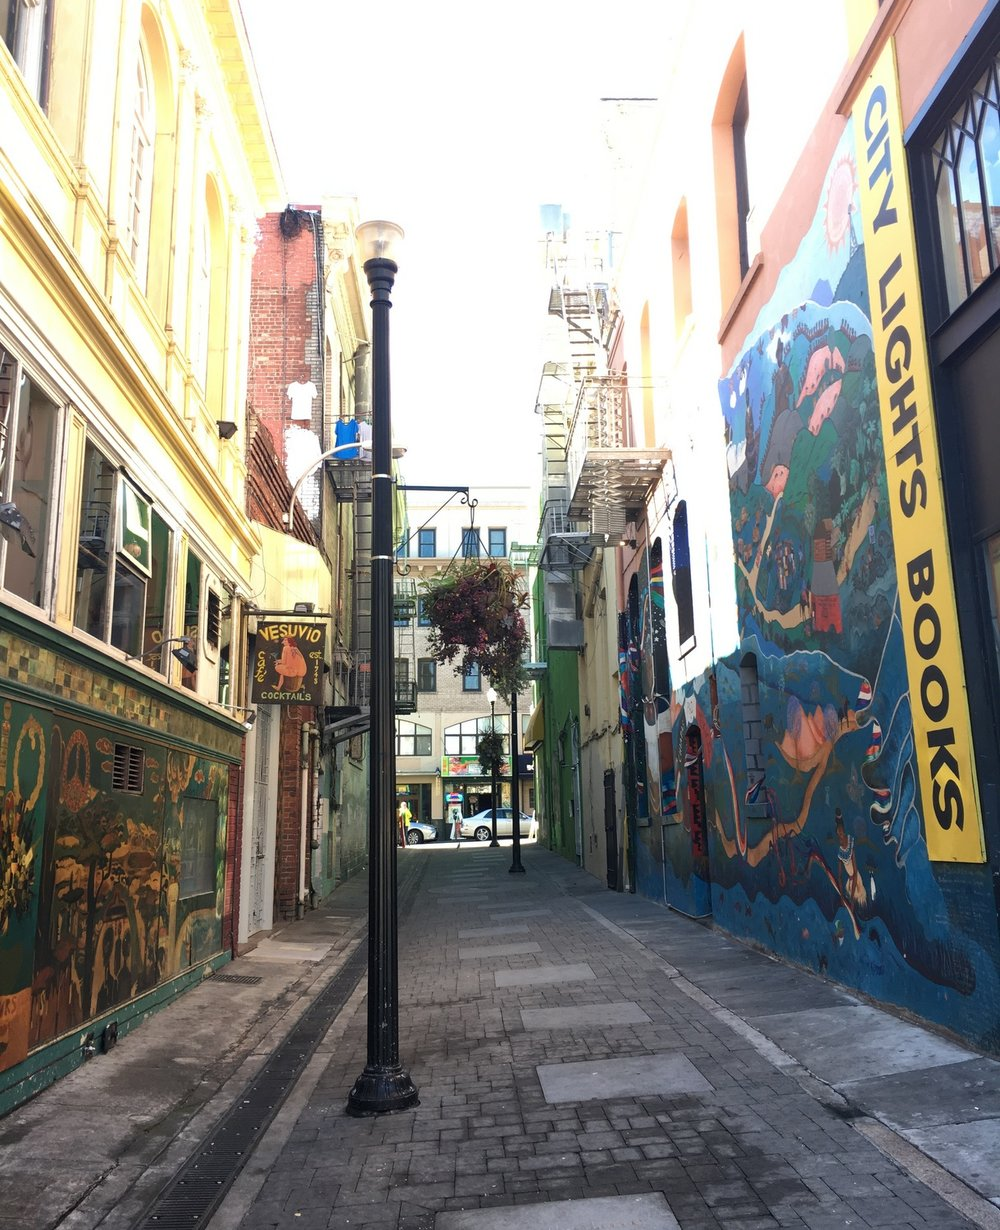 Jack Keouac Alleyway in San Francisco